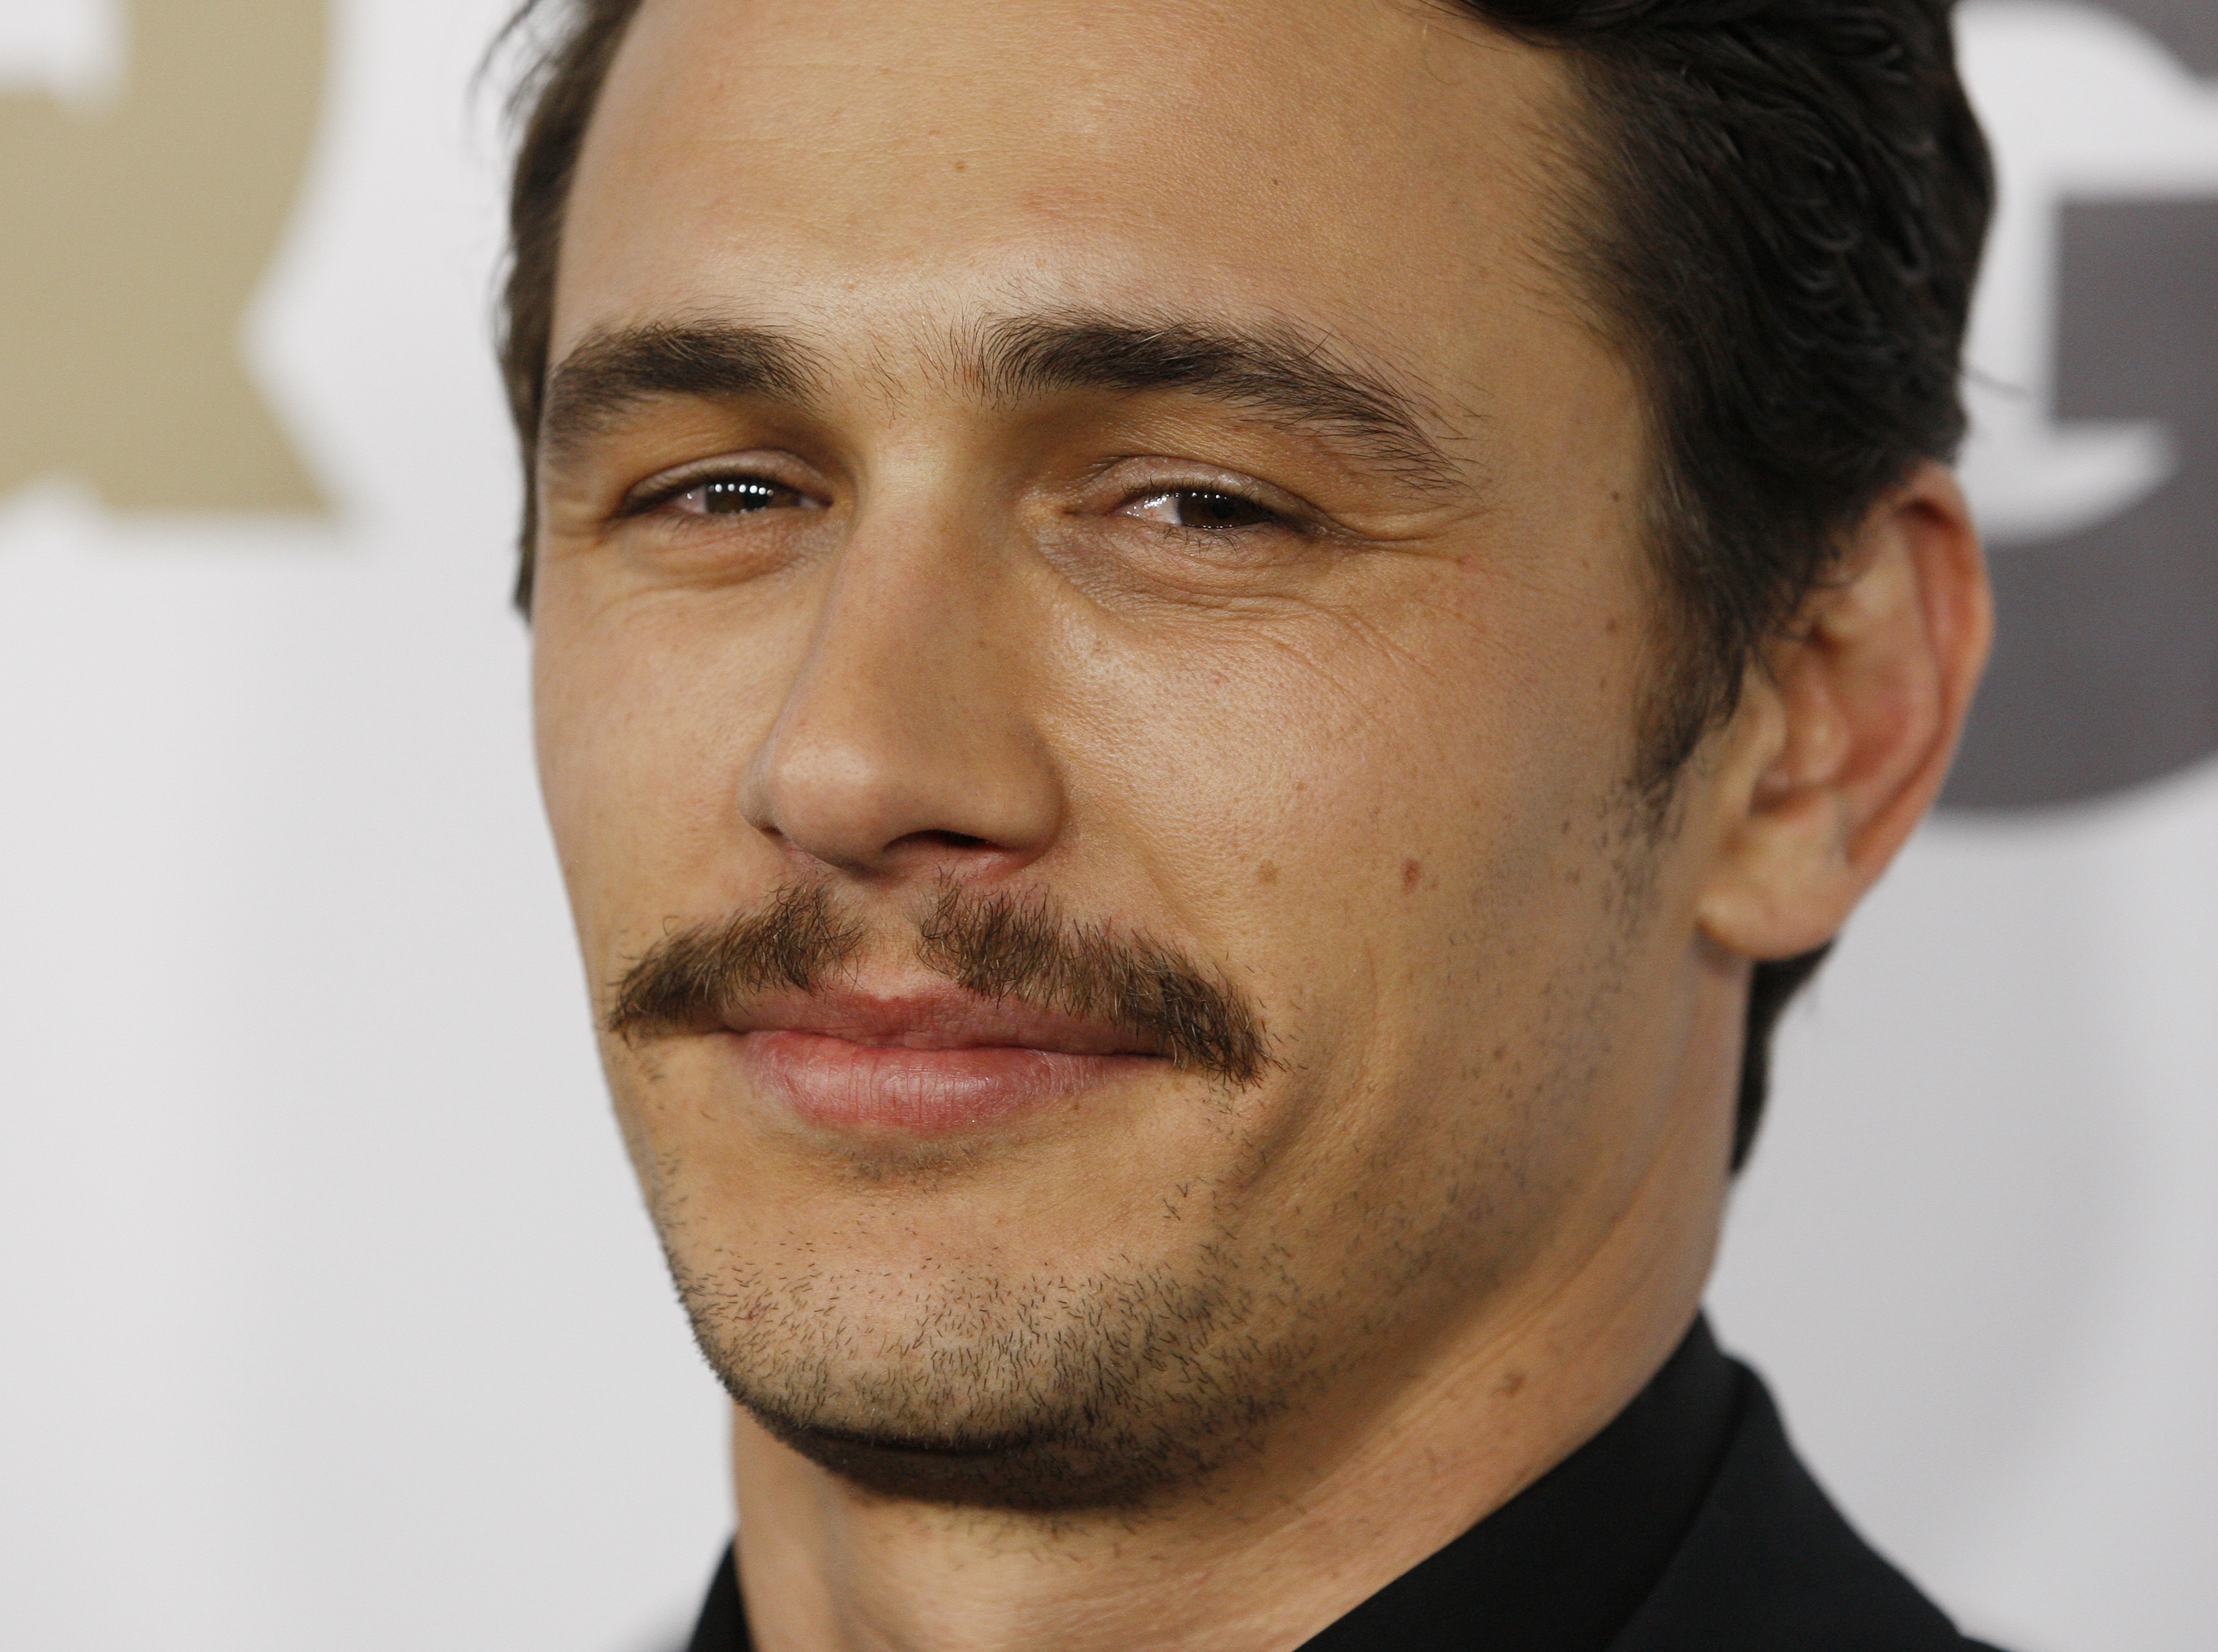 """Actor James Franco arrives at the GQ Magazine 2010 """"Men of the Year"""" party where he was honoured as one of the """"Men of the Year"""" in Hollywood, California, November 17, 2010. REUTERS/Fred Prouser (UNITED STATES - Tags: ENTERTAINMENT)"""